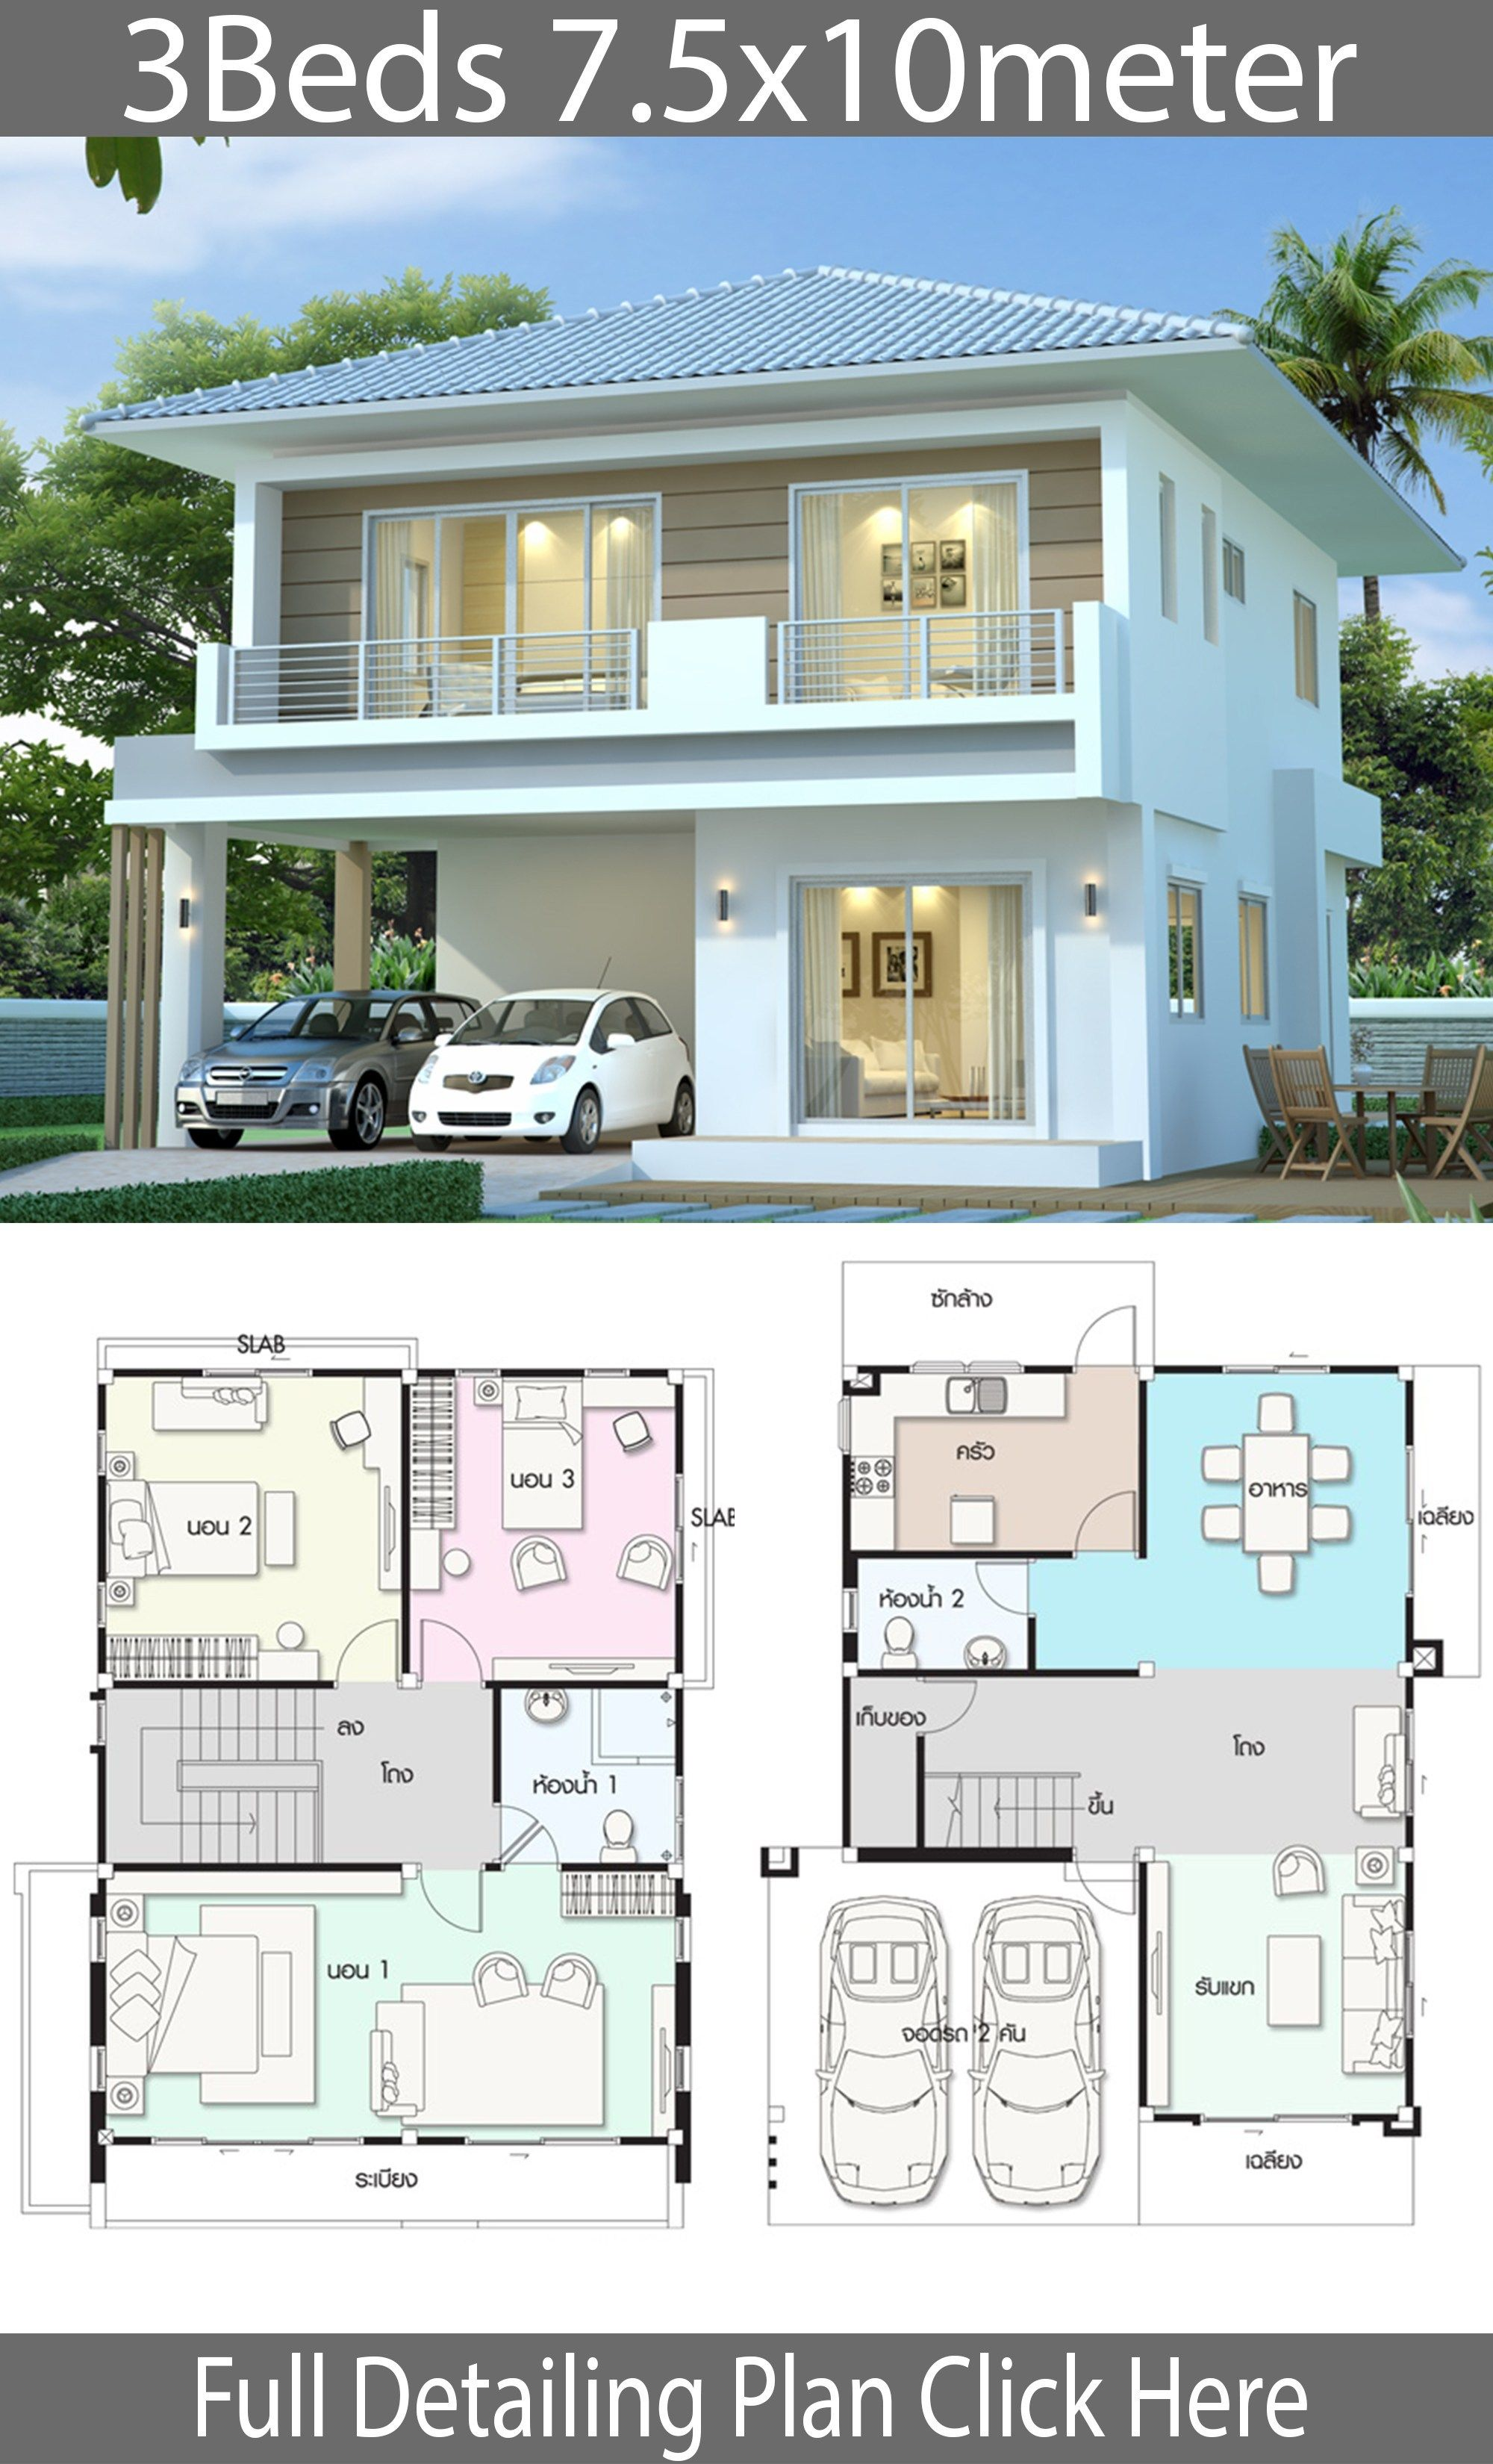 Photo of Modern house design plan 7.5x10m with 3Beds – Home Ideas